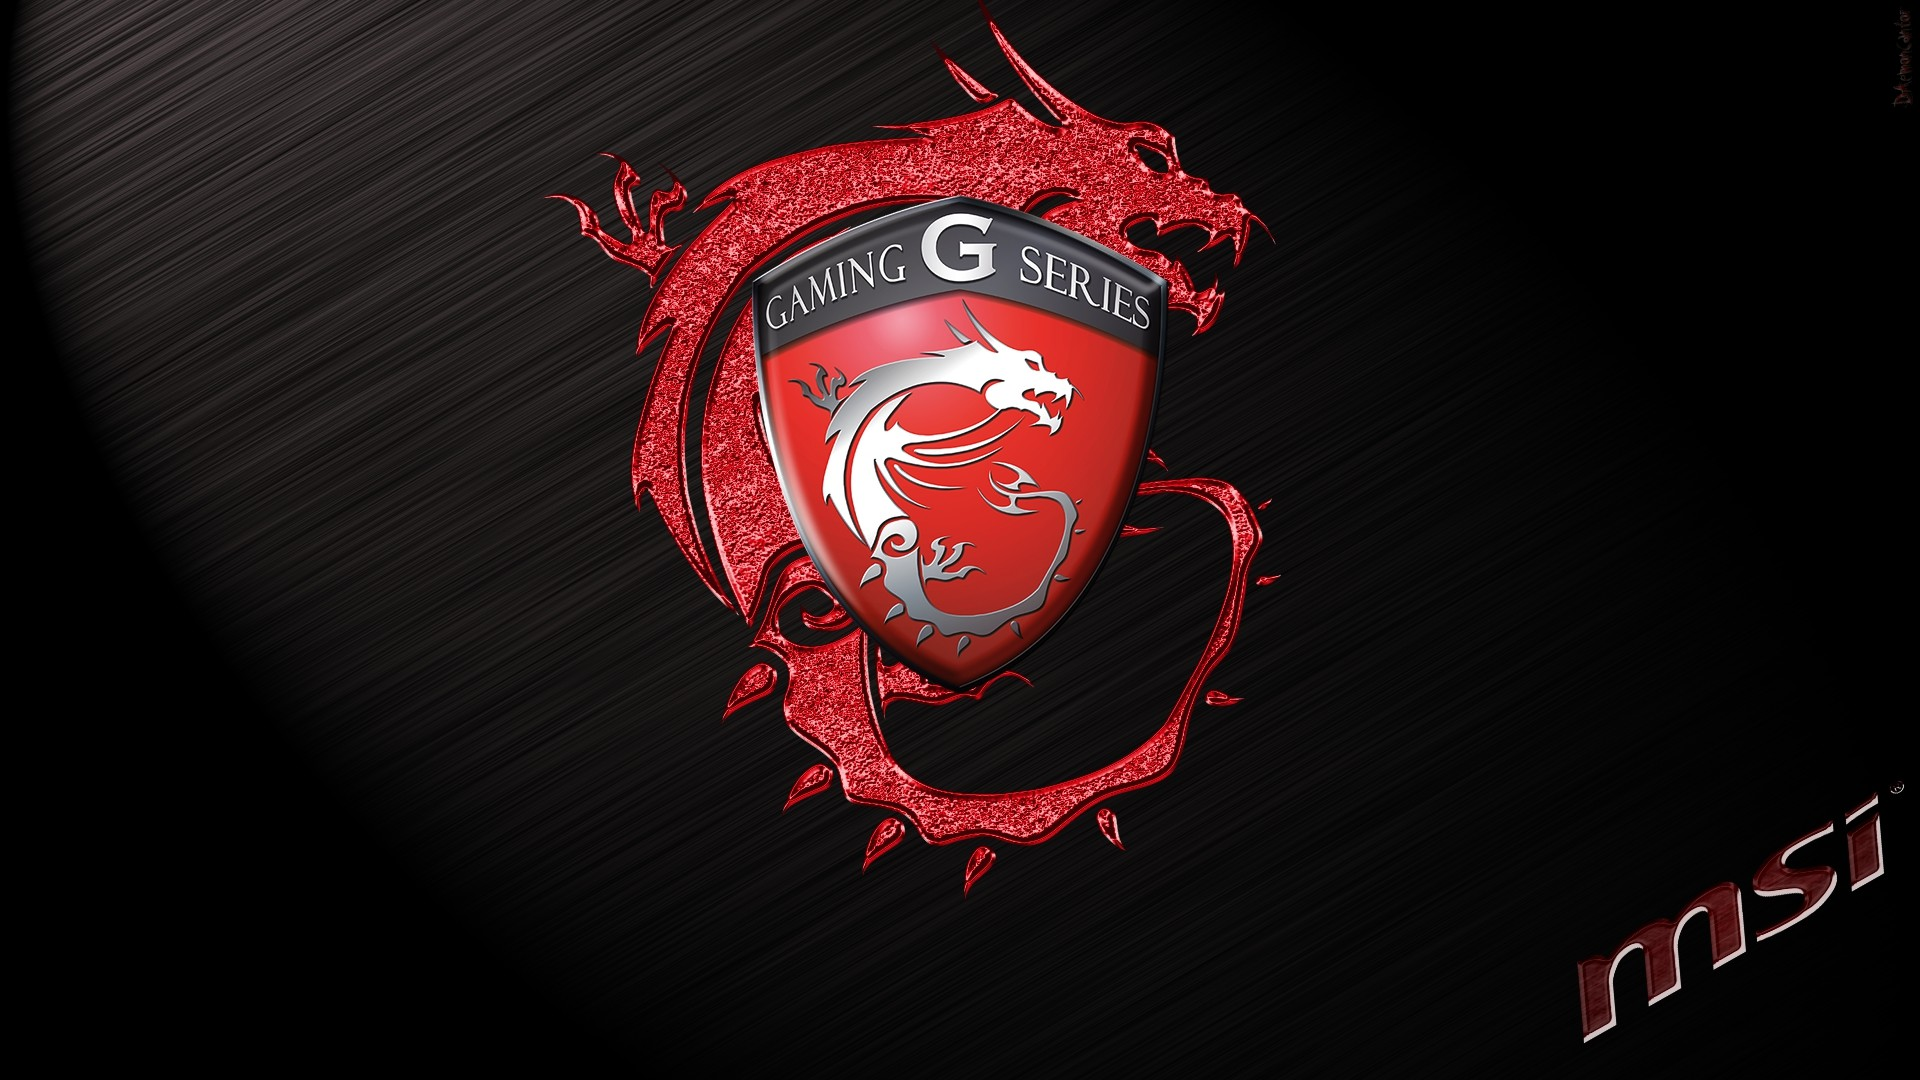 Wallpapers Of The Day: MSI Gaming   MSI Gaming Wallpapers